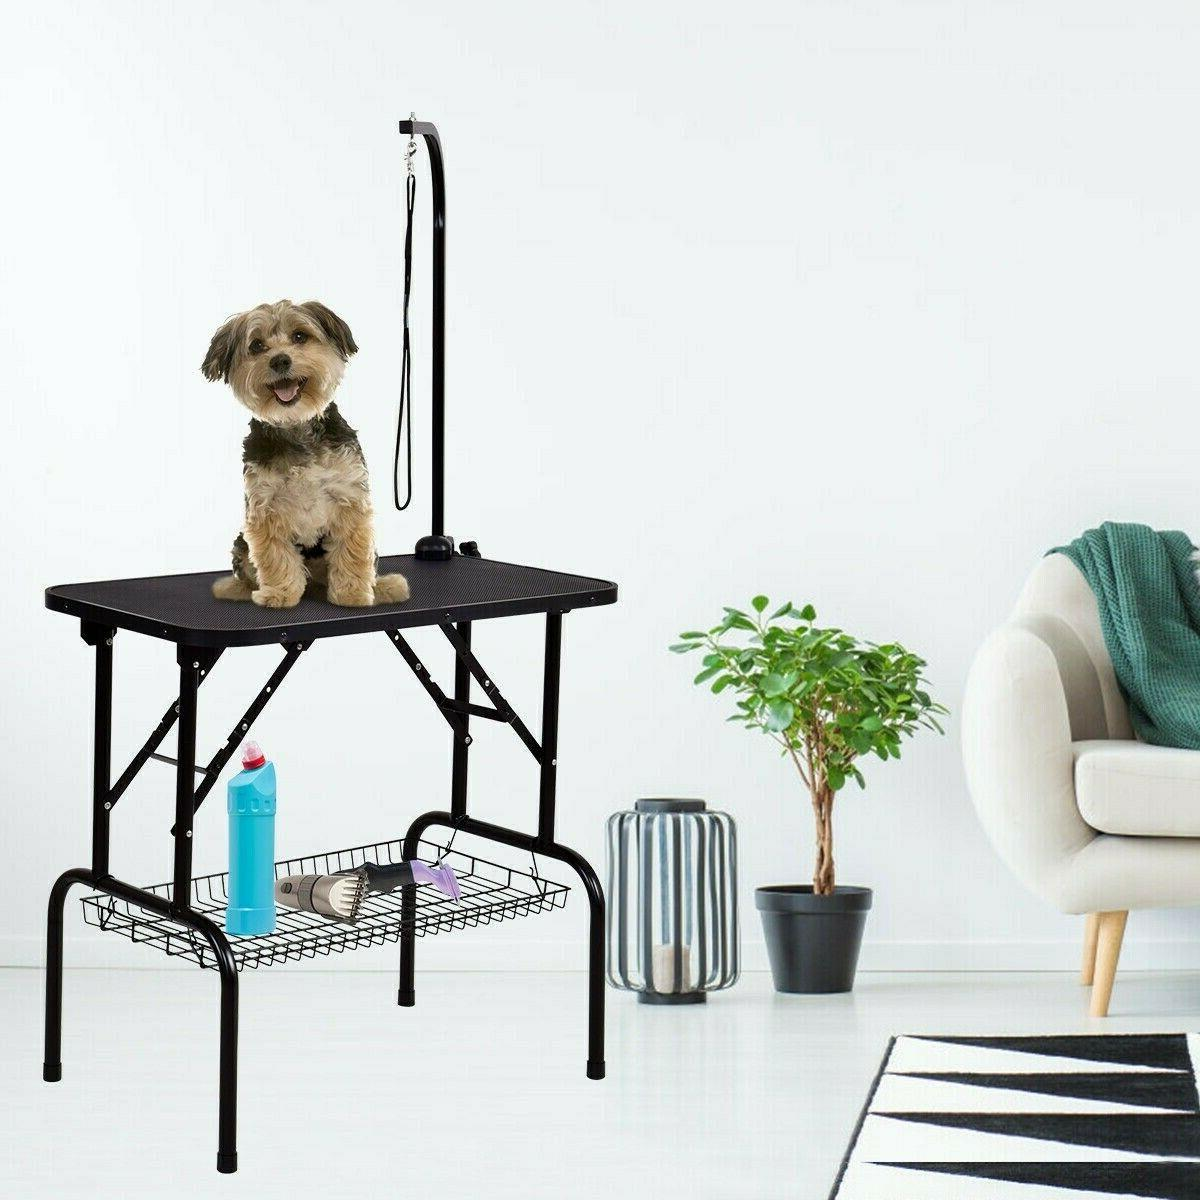 32 pet grooming table durable foldable rubber